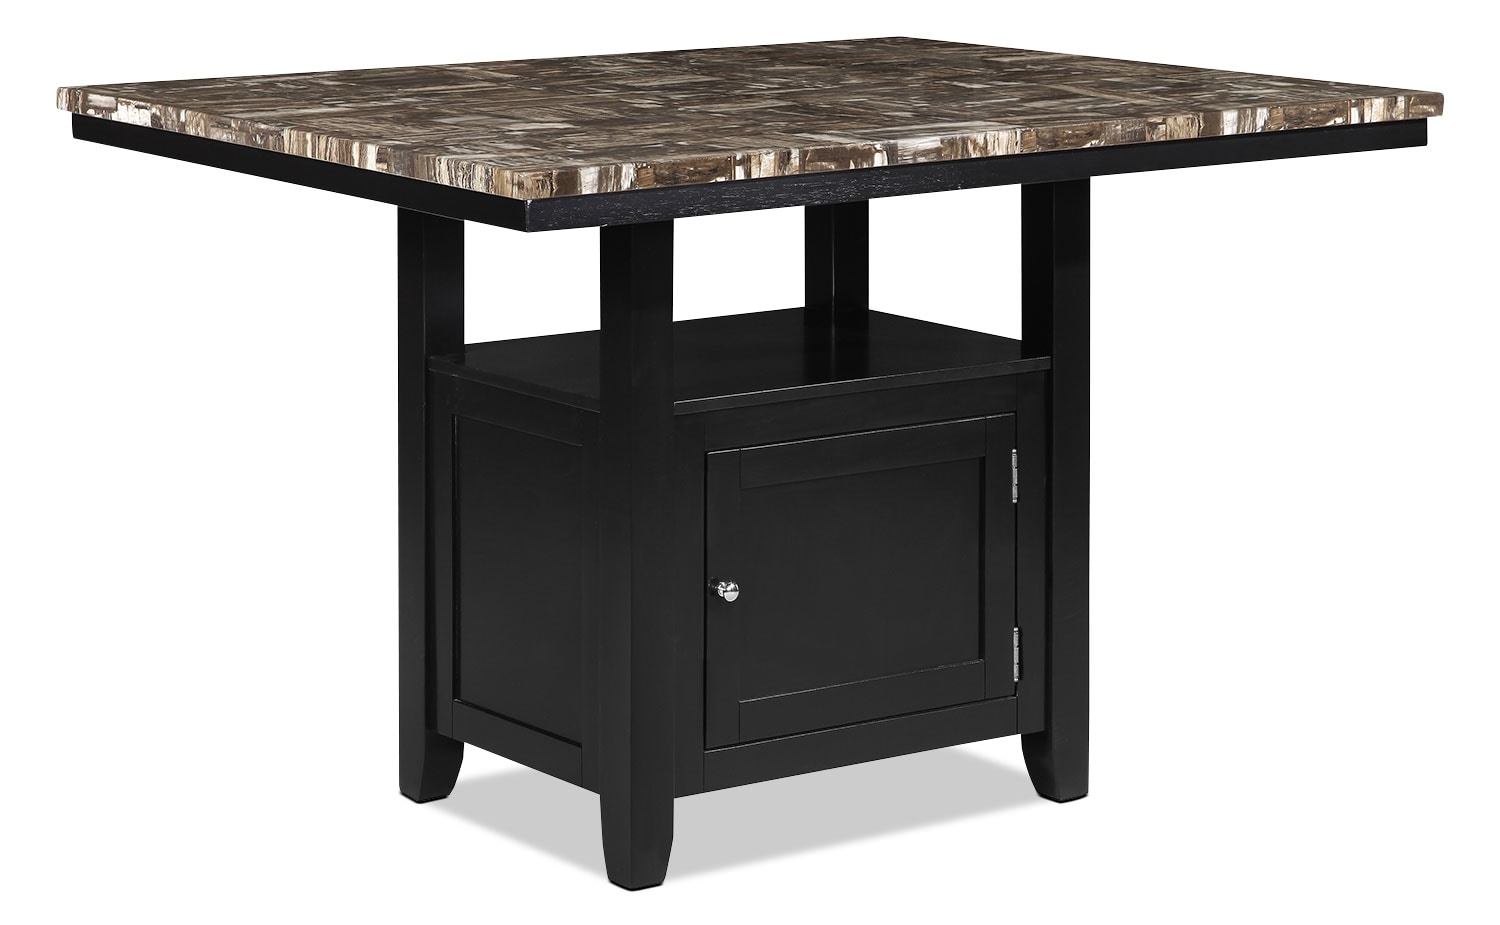 Dining Room Furniture - Vale Counter-Height Dining Table with Storage